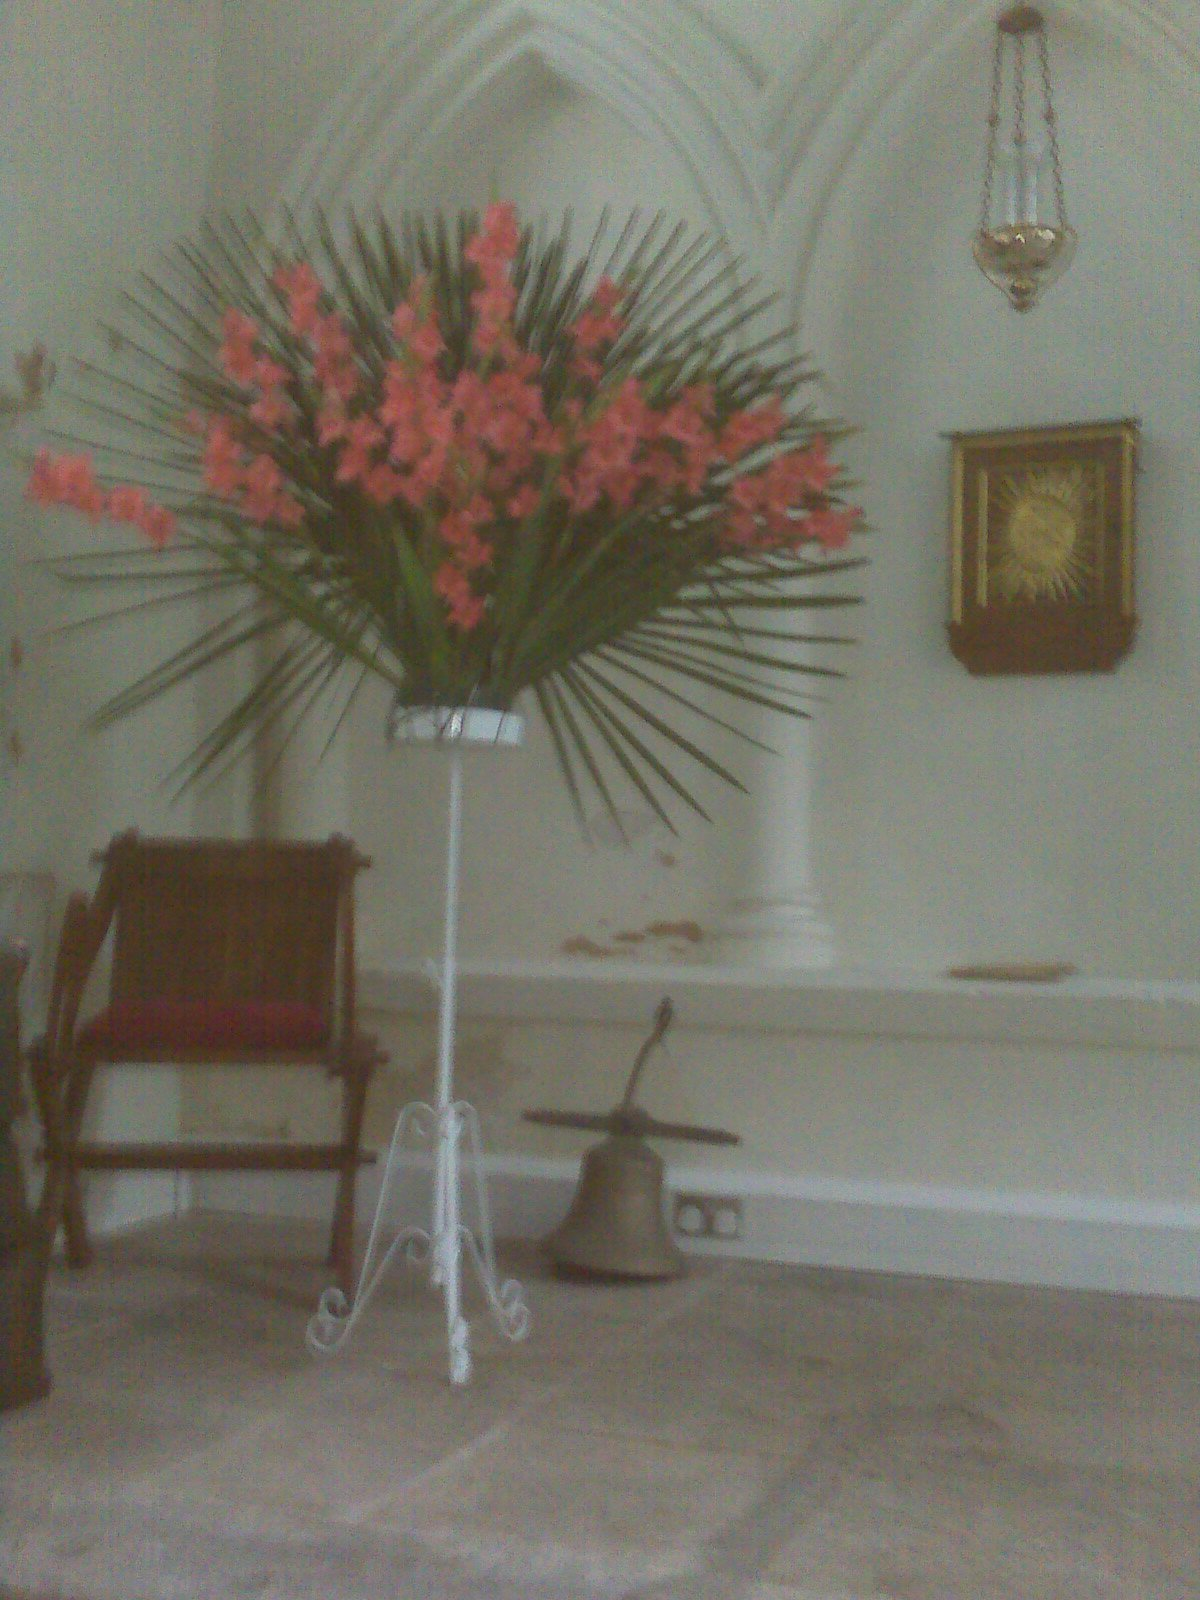 ste_flowerarrangement_july2009